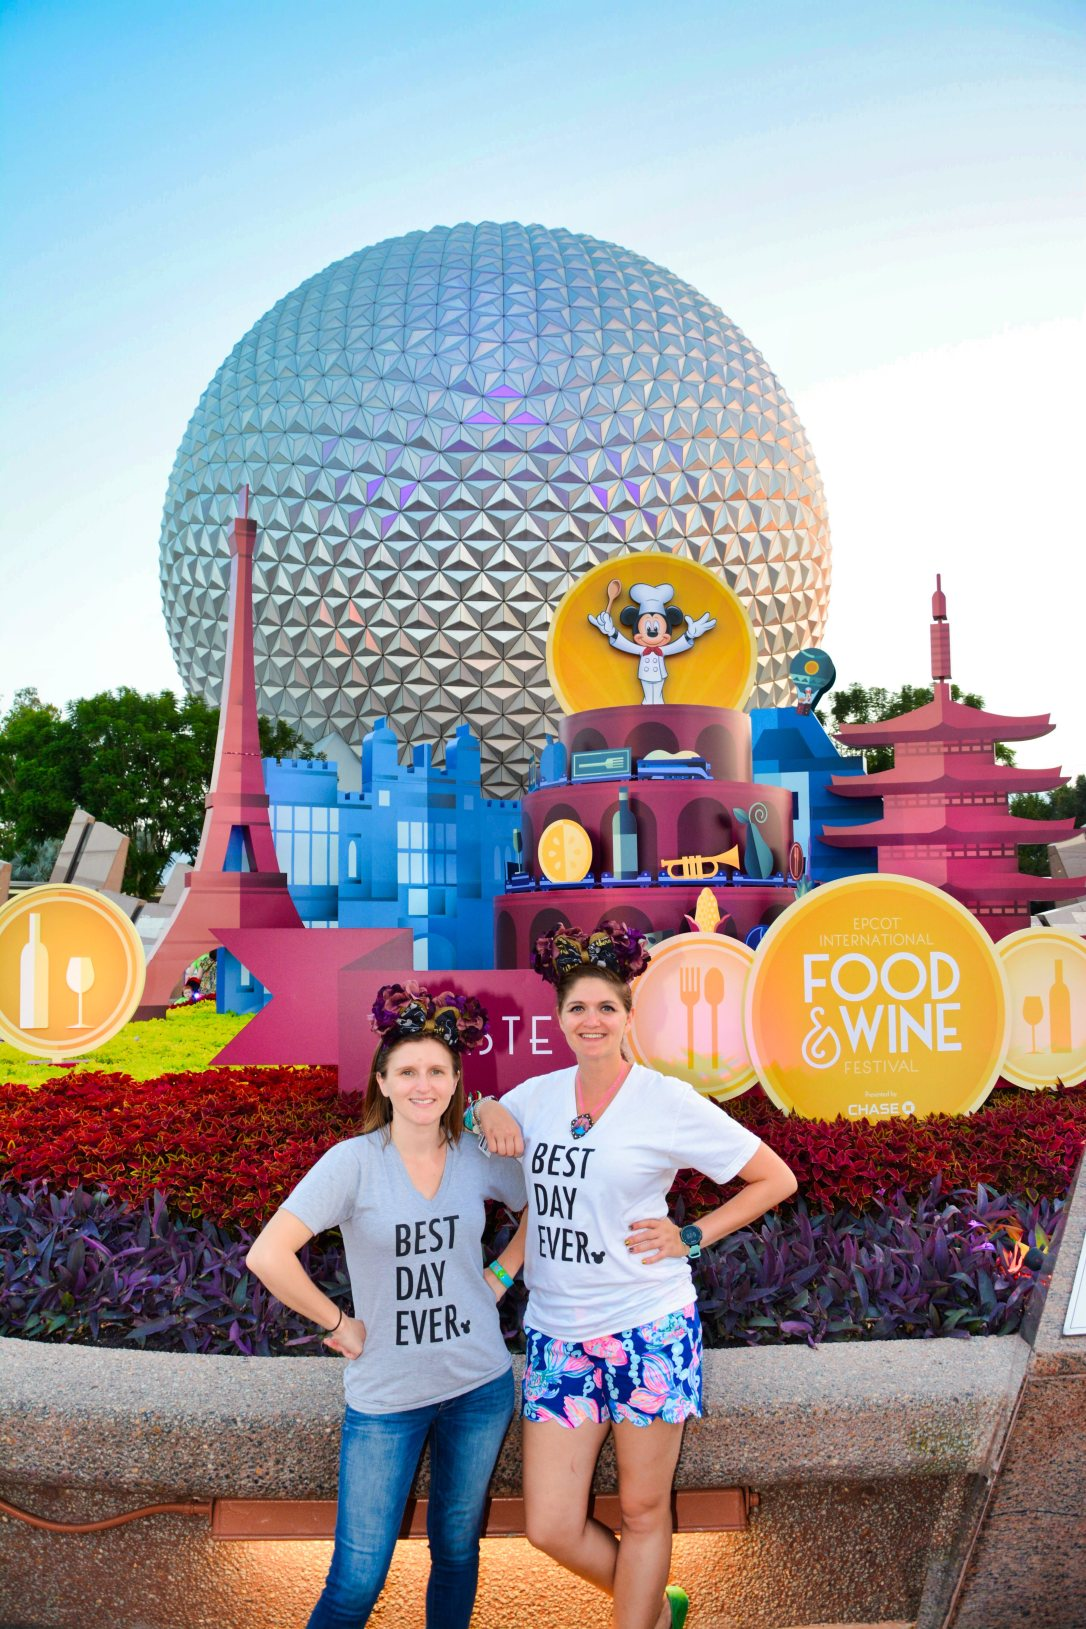 PhotoPass_Visiting_EPCOT_7850510243(1)_15